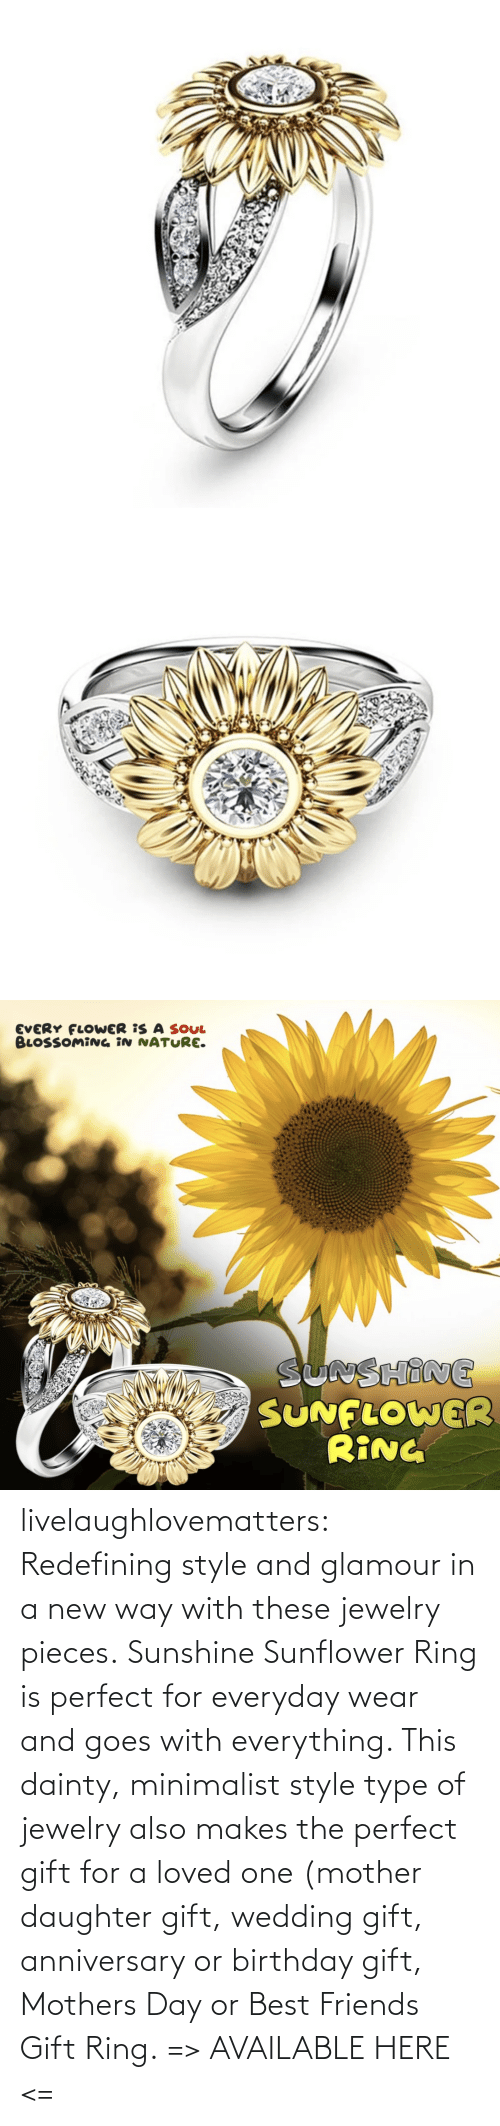 Mothers: livelaughlovematters: Redefining style and glamour in a new way with these jewelry pieces. Sunshine Sunflower Ring is perfect for everyday wear and goes with everything. This dainty, minimalist style type of jewelry also makes the perfect gift for a loved one (mother daughter gift, wedding gift, anniversary or birthday gift, Mothers Day or Best Friends Gift Ring. => AVAILABLE HERE <=